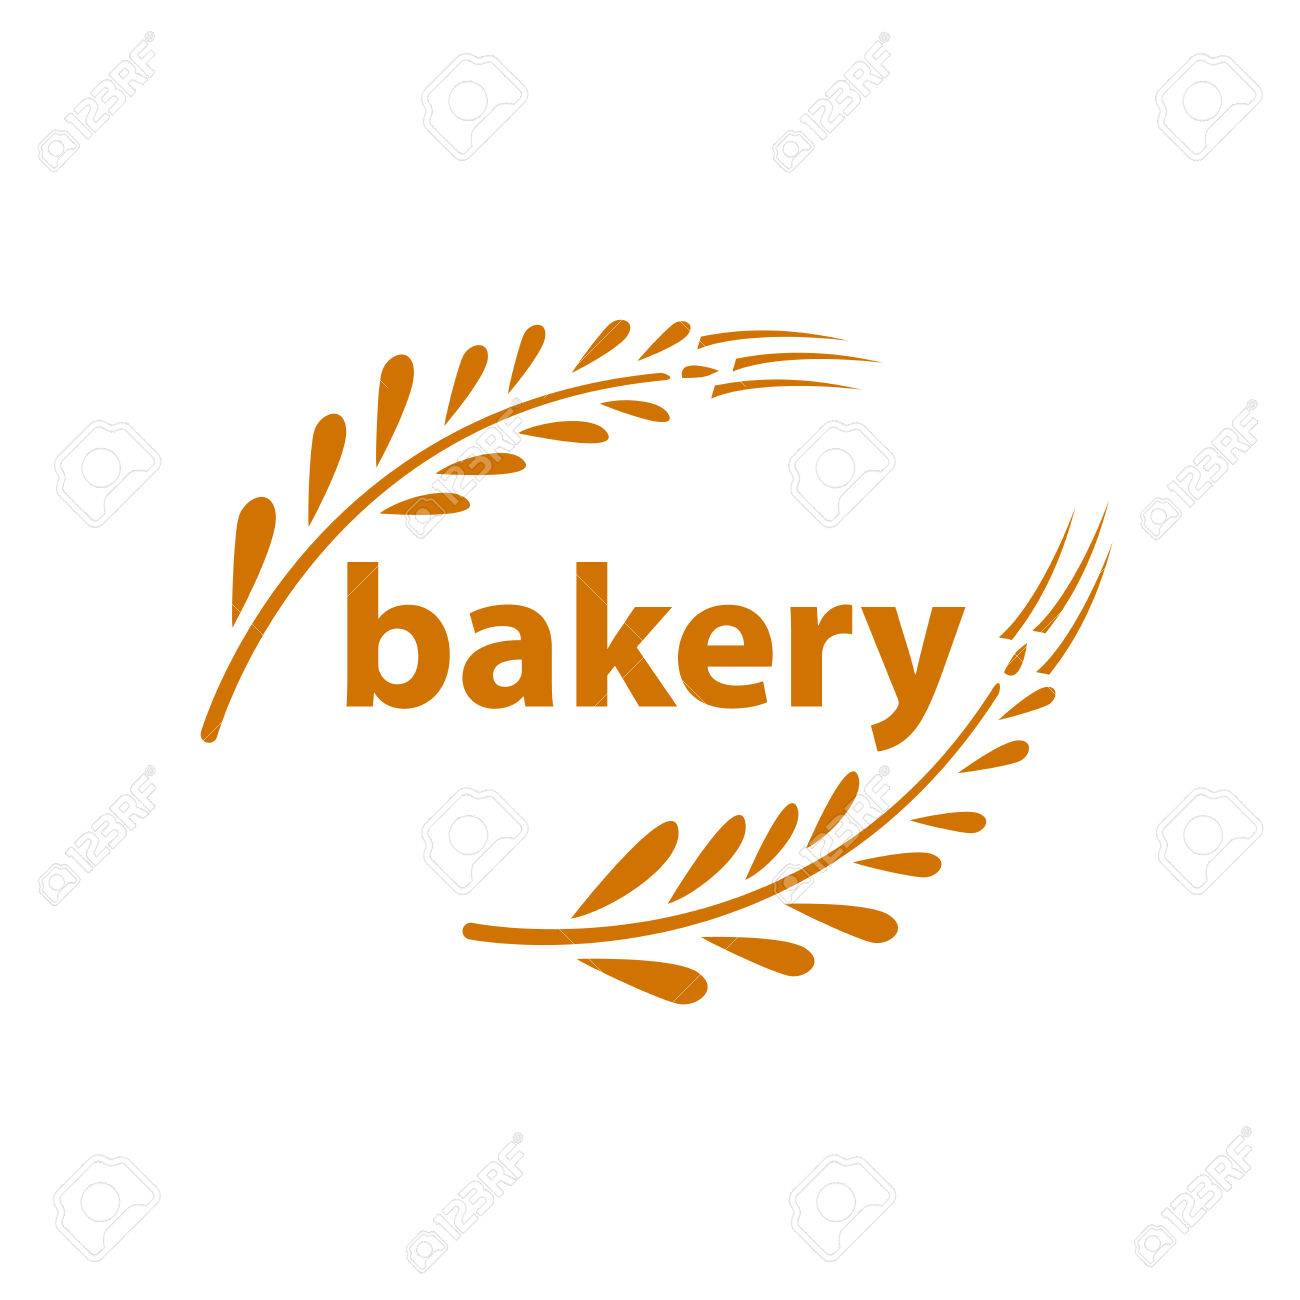 Bakery logo templates baker grain design templates print real 44 best logo cupcake images on pinterest candies business cards 67324432 logo design template for a bakery vector illustration of icon stock vector free pronofoot35fo Image collections